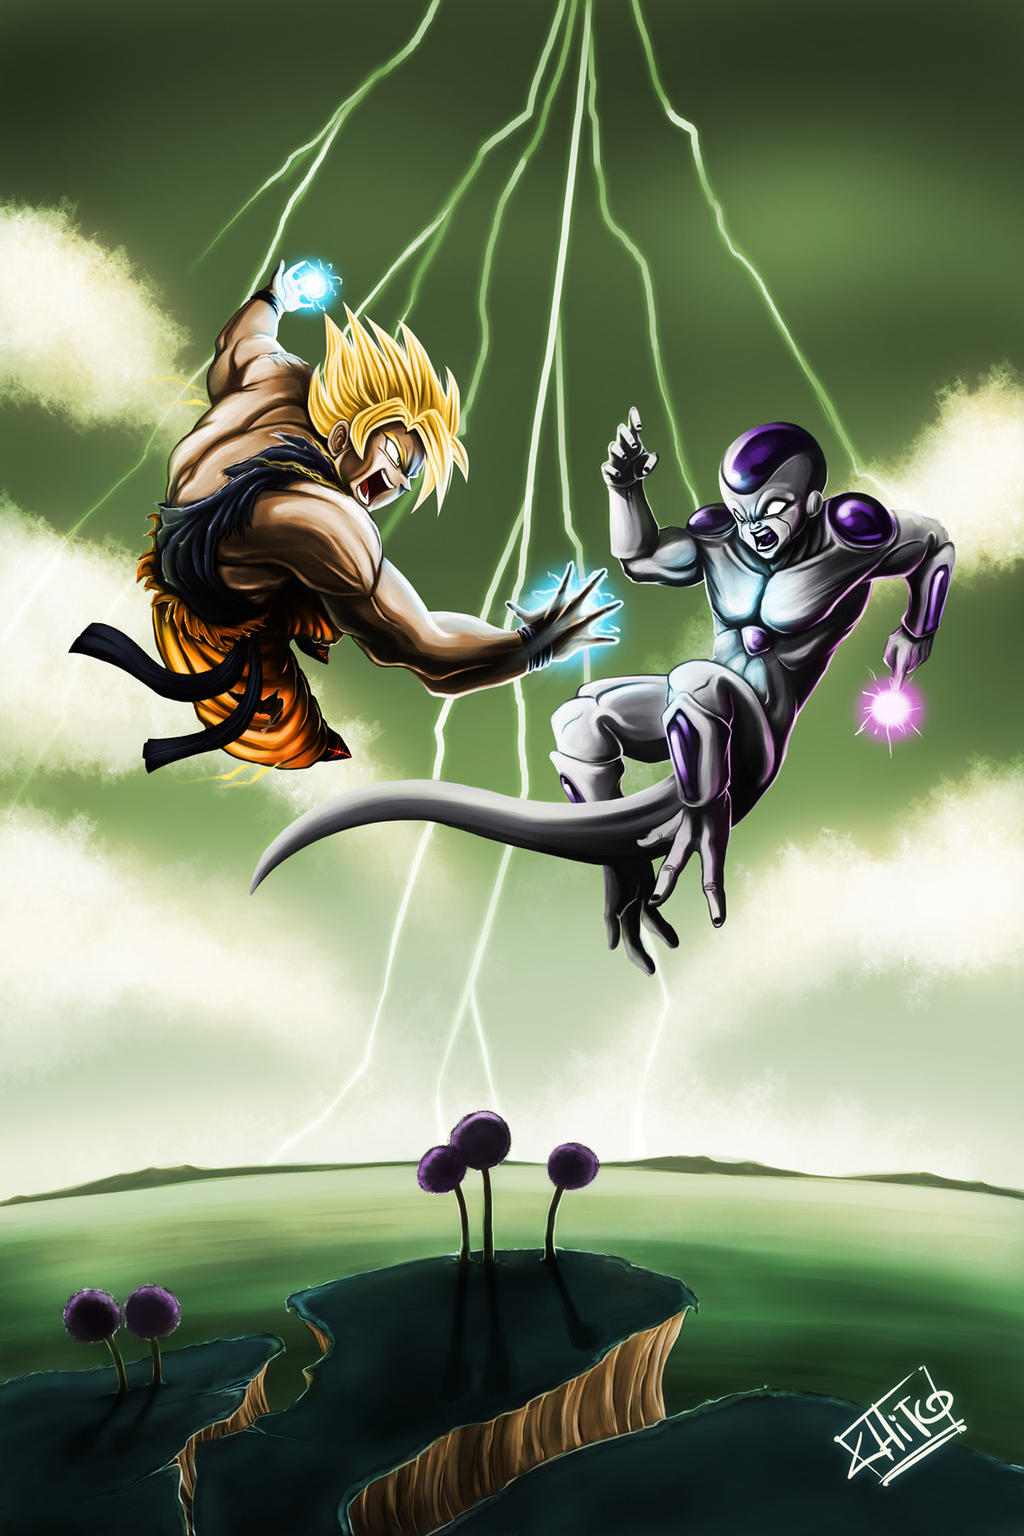 Goku vs Freezer by ManuDGI